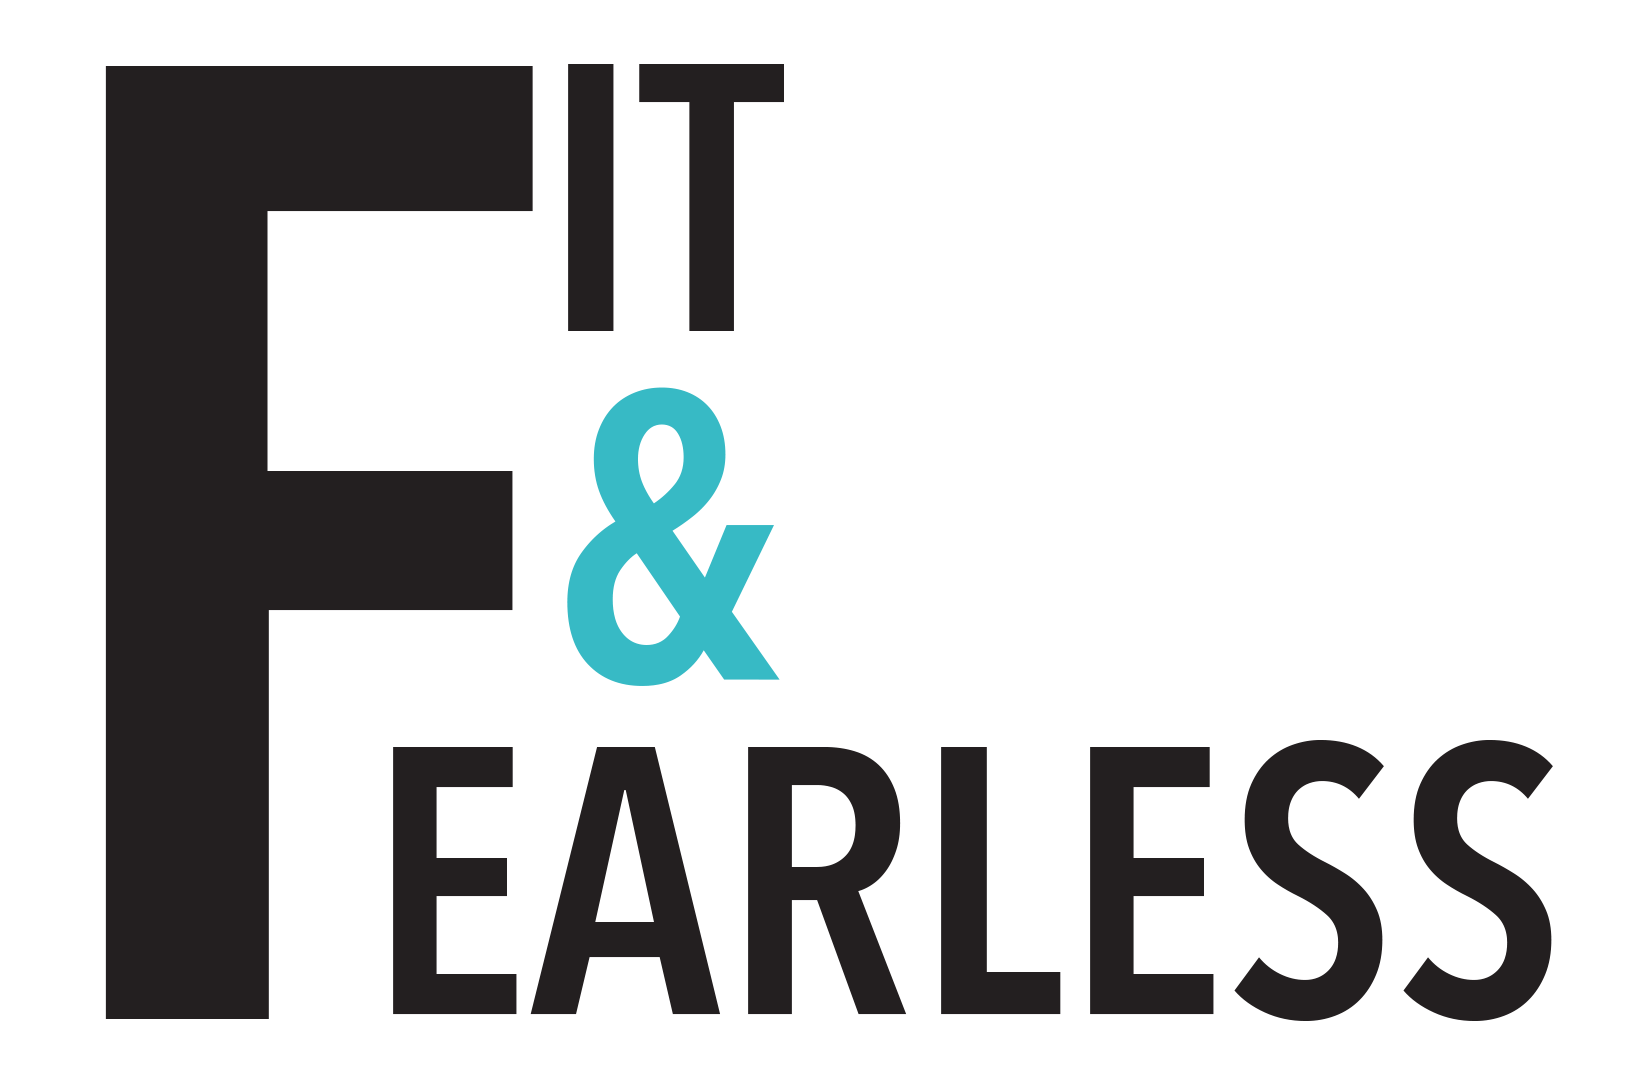 Fit and Fearless NY